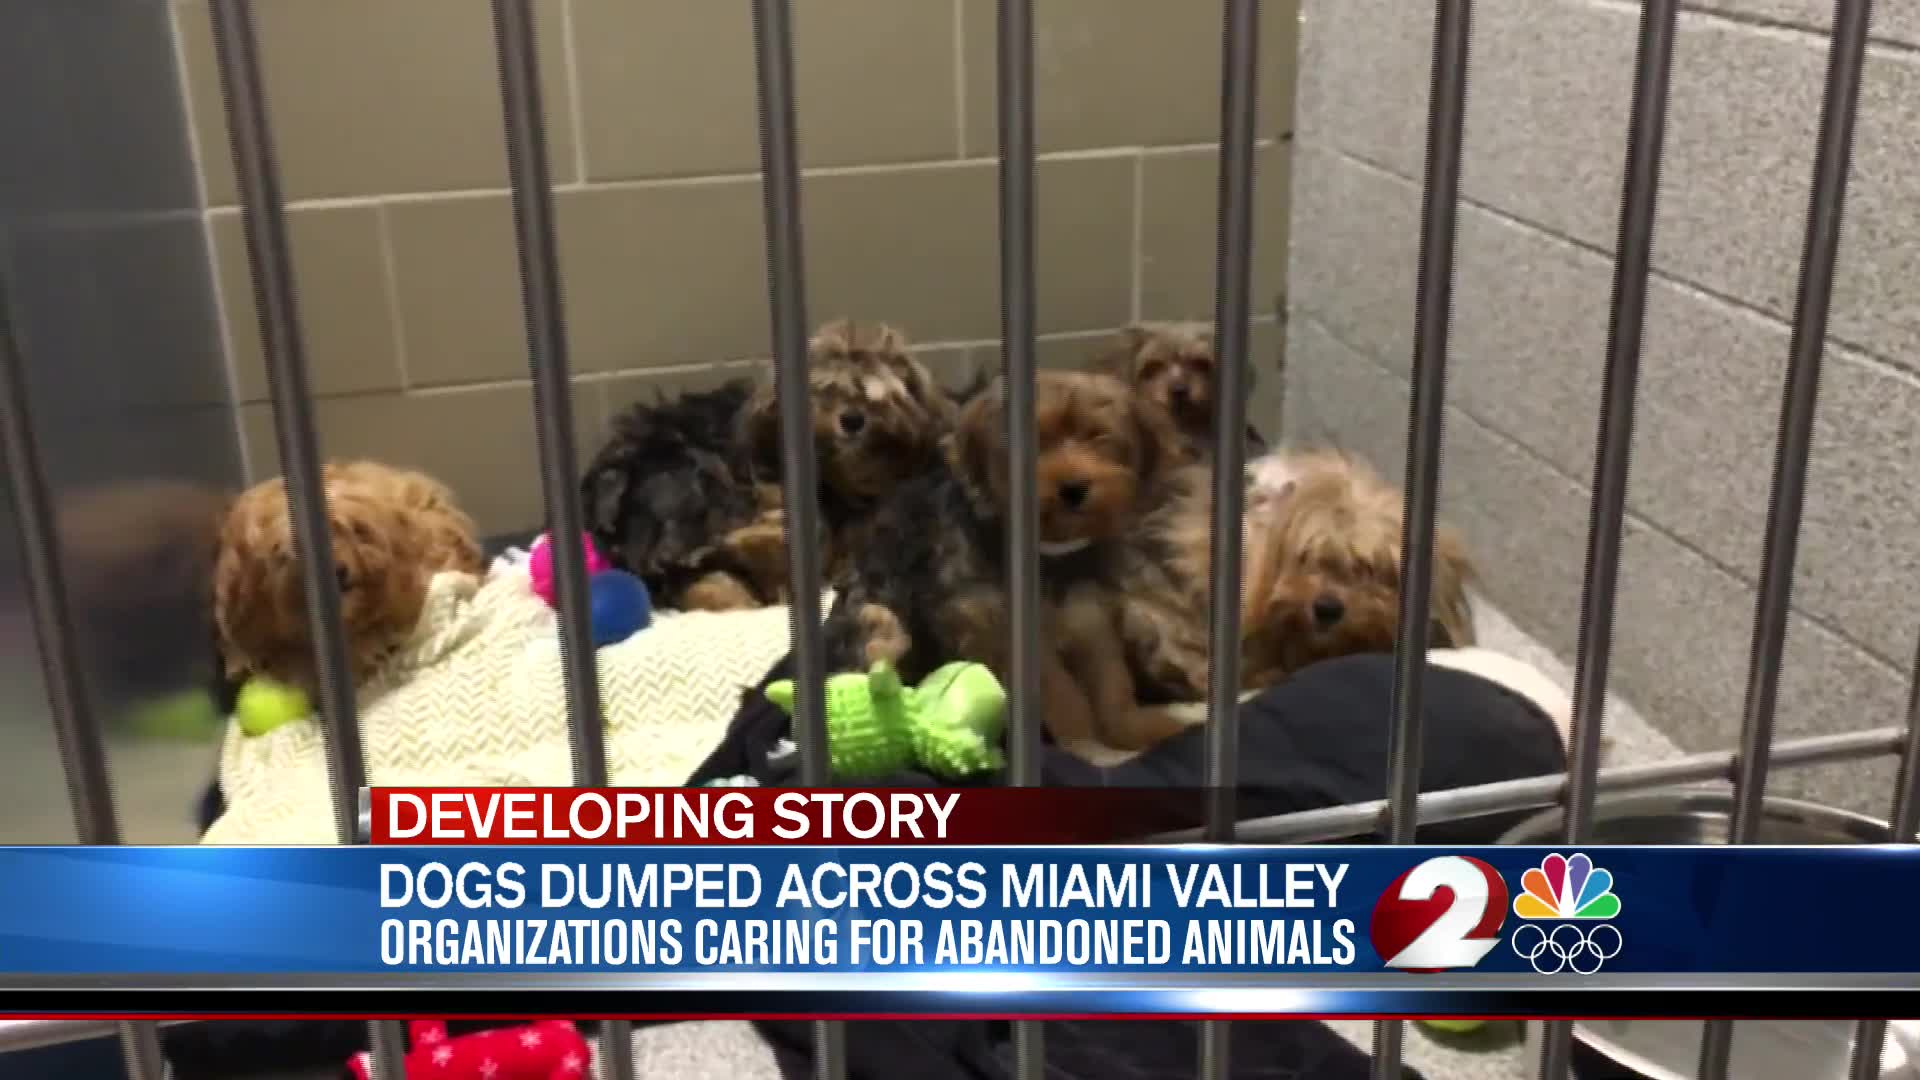 Dogs dumped across Miami Valley